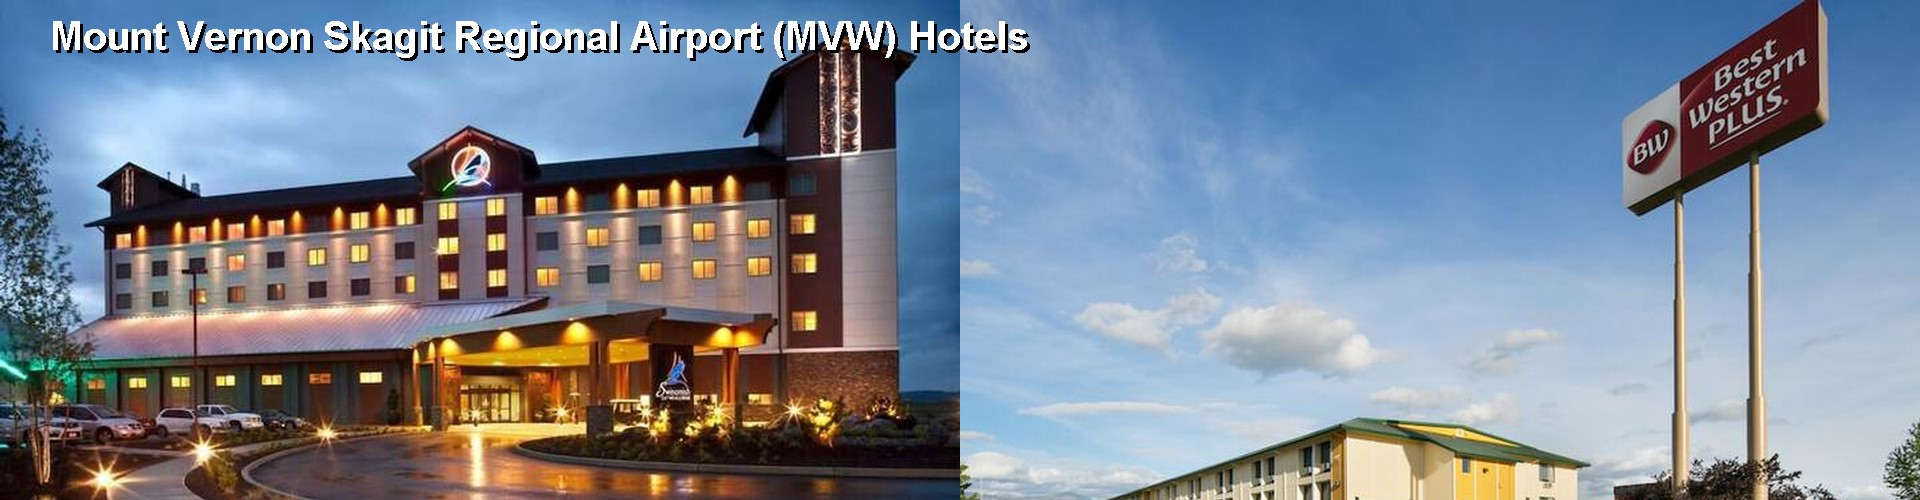 5 best hotels near mount vernon skagit regional airport mvw